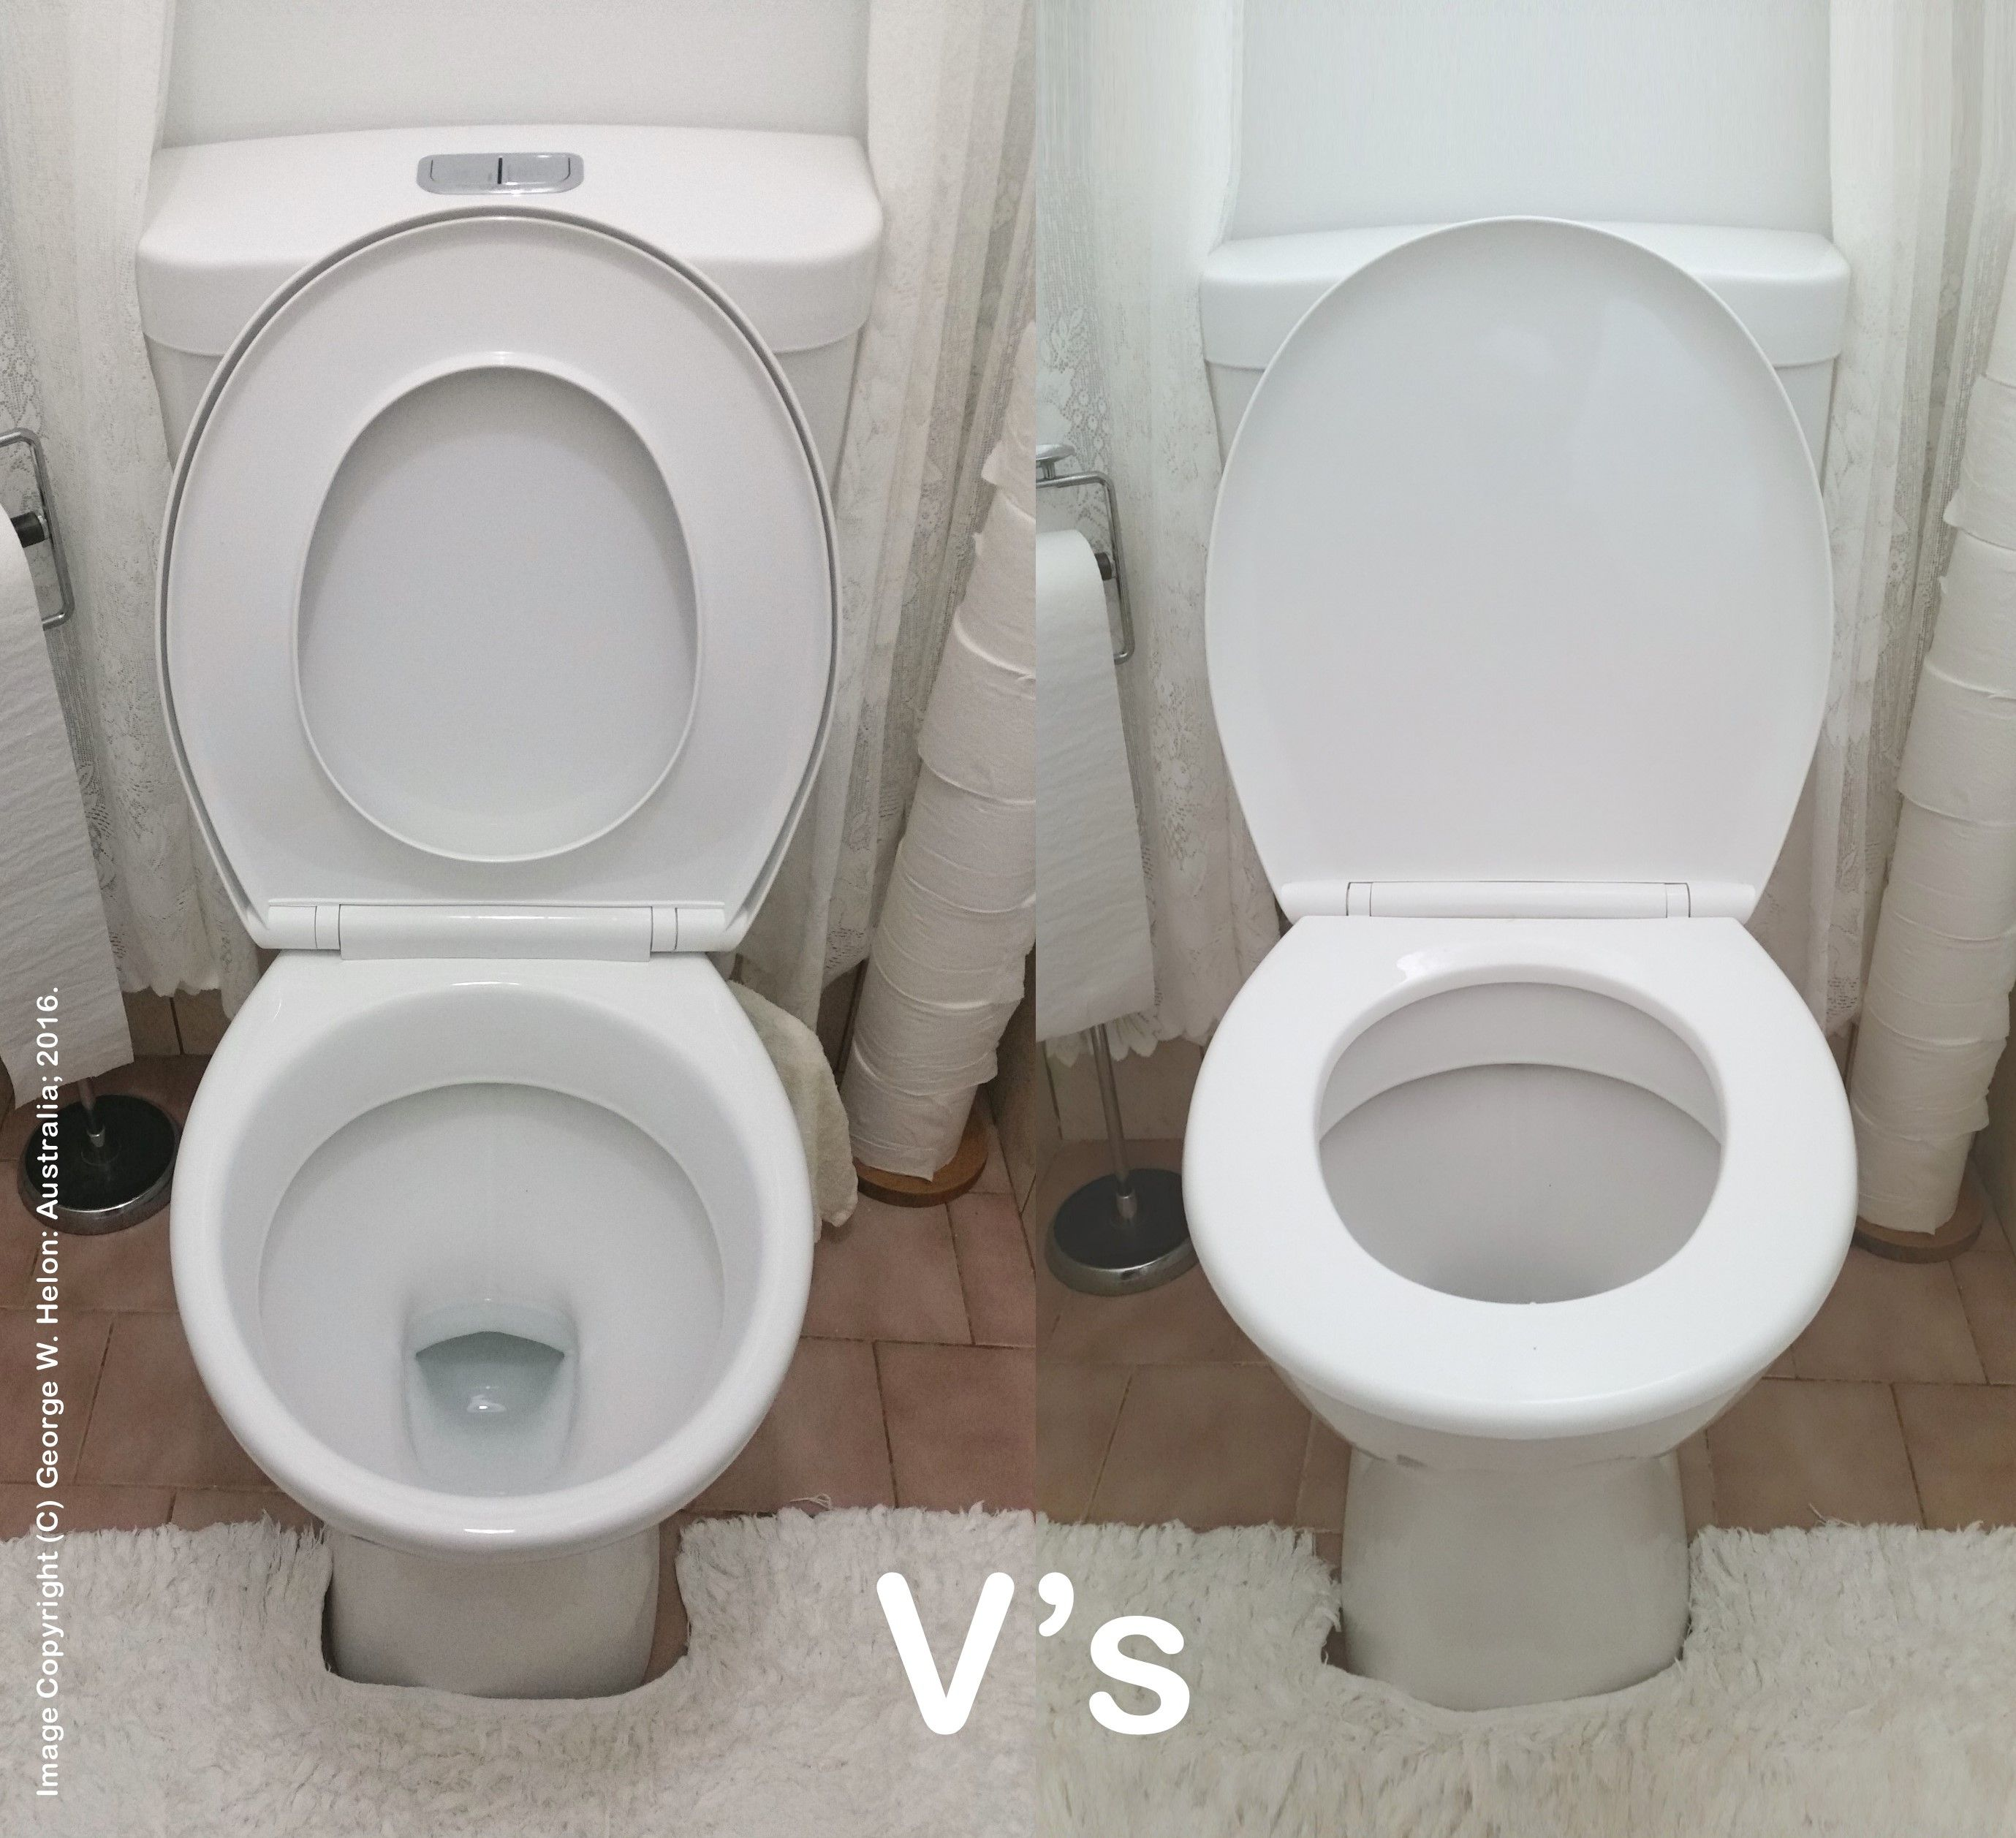 Toilet Seat Up Or Down.The Age Old Argument Leave The Seat Up Or Put The Seat